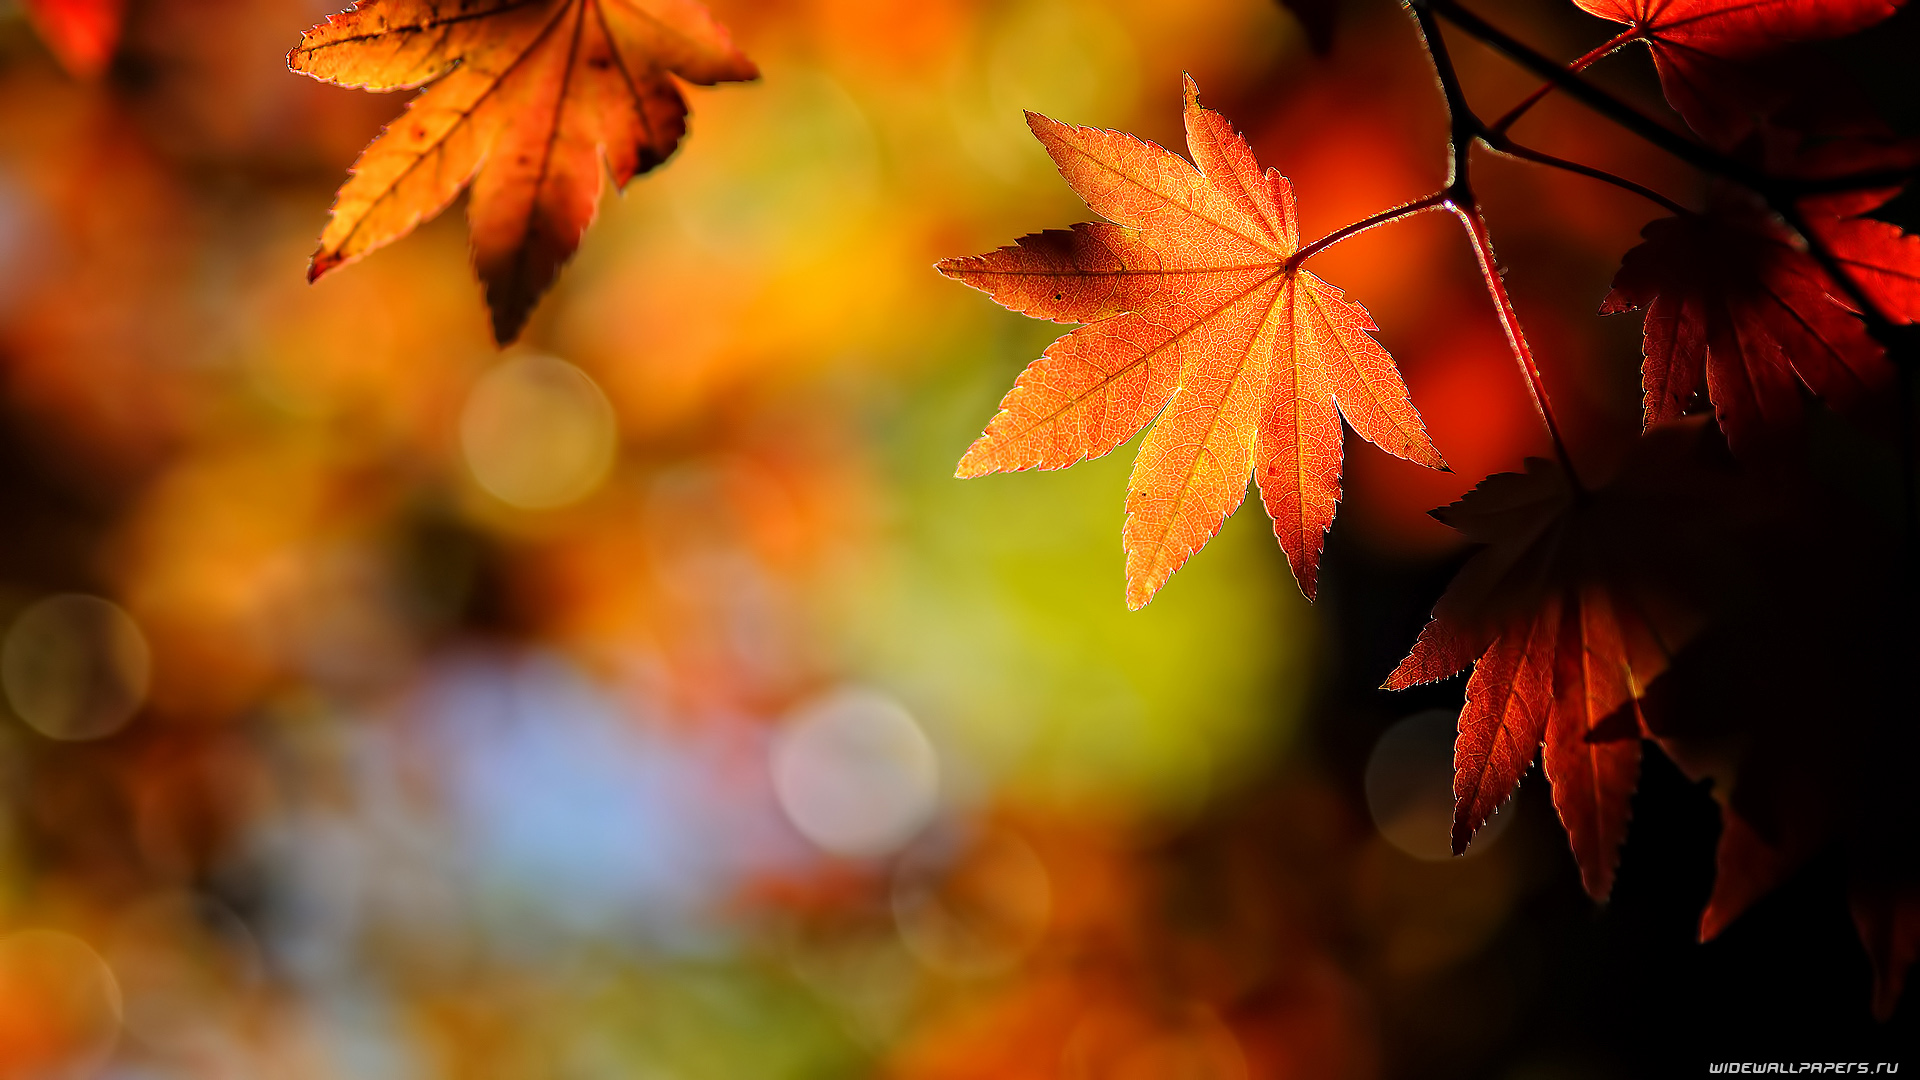 Autumn-Leaves-Hd-wallpaper-wp6002149